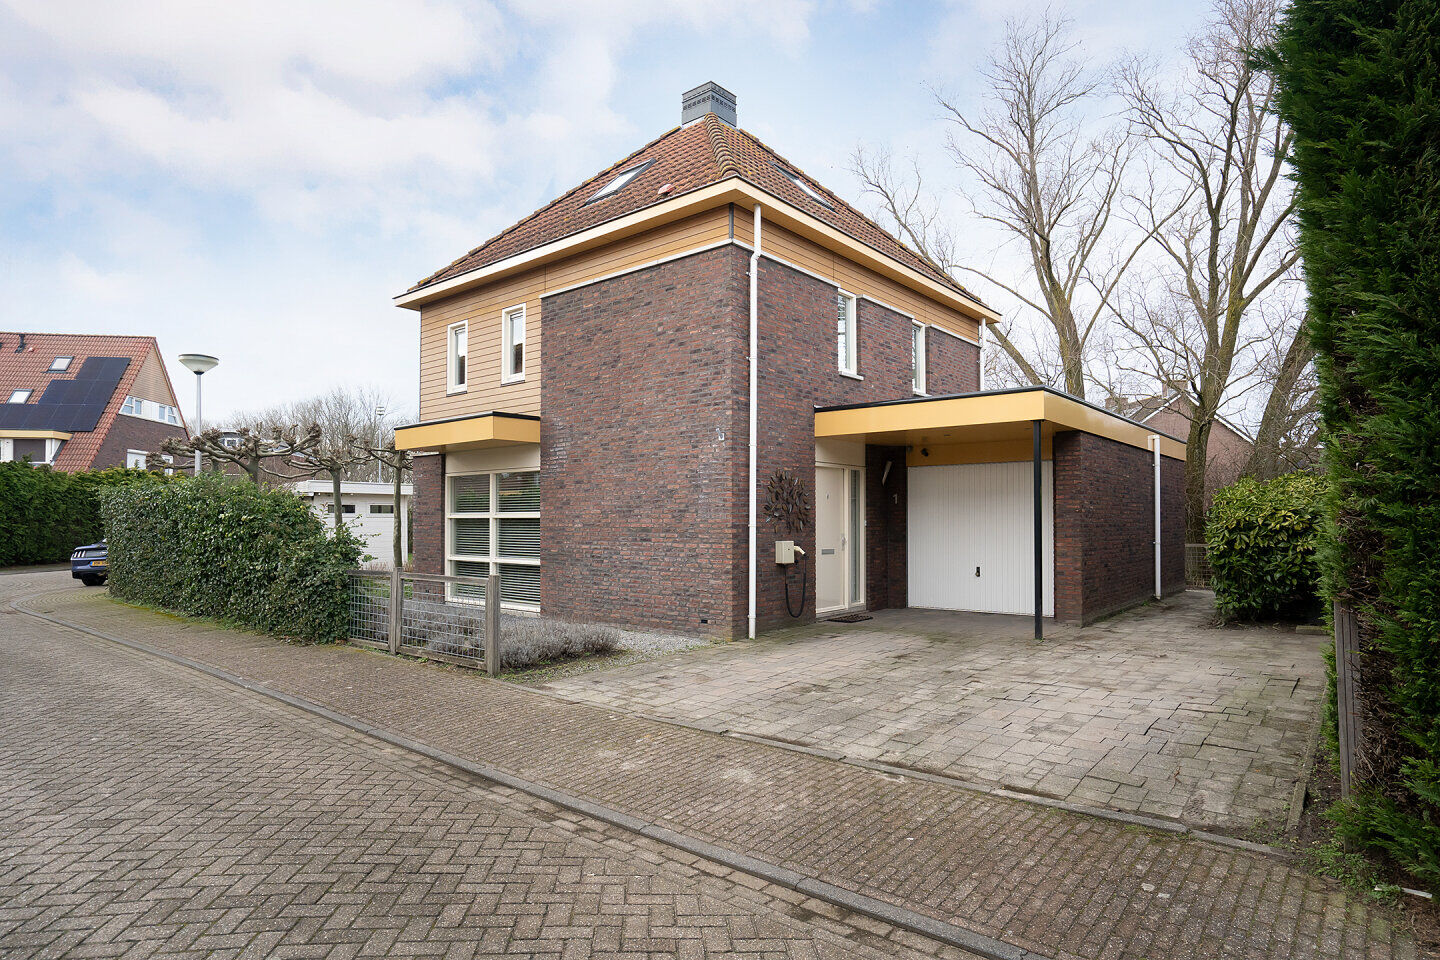 37157-jan_de_preestraat_1-steenbergen-712575742